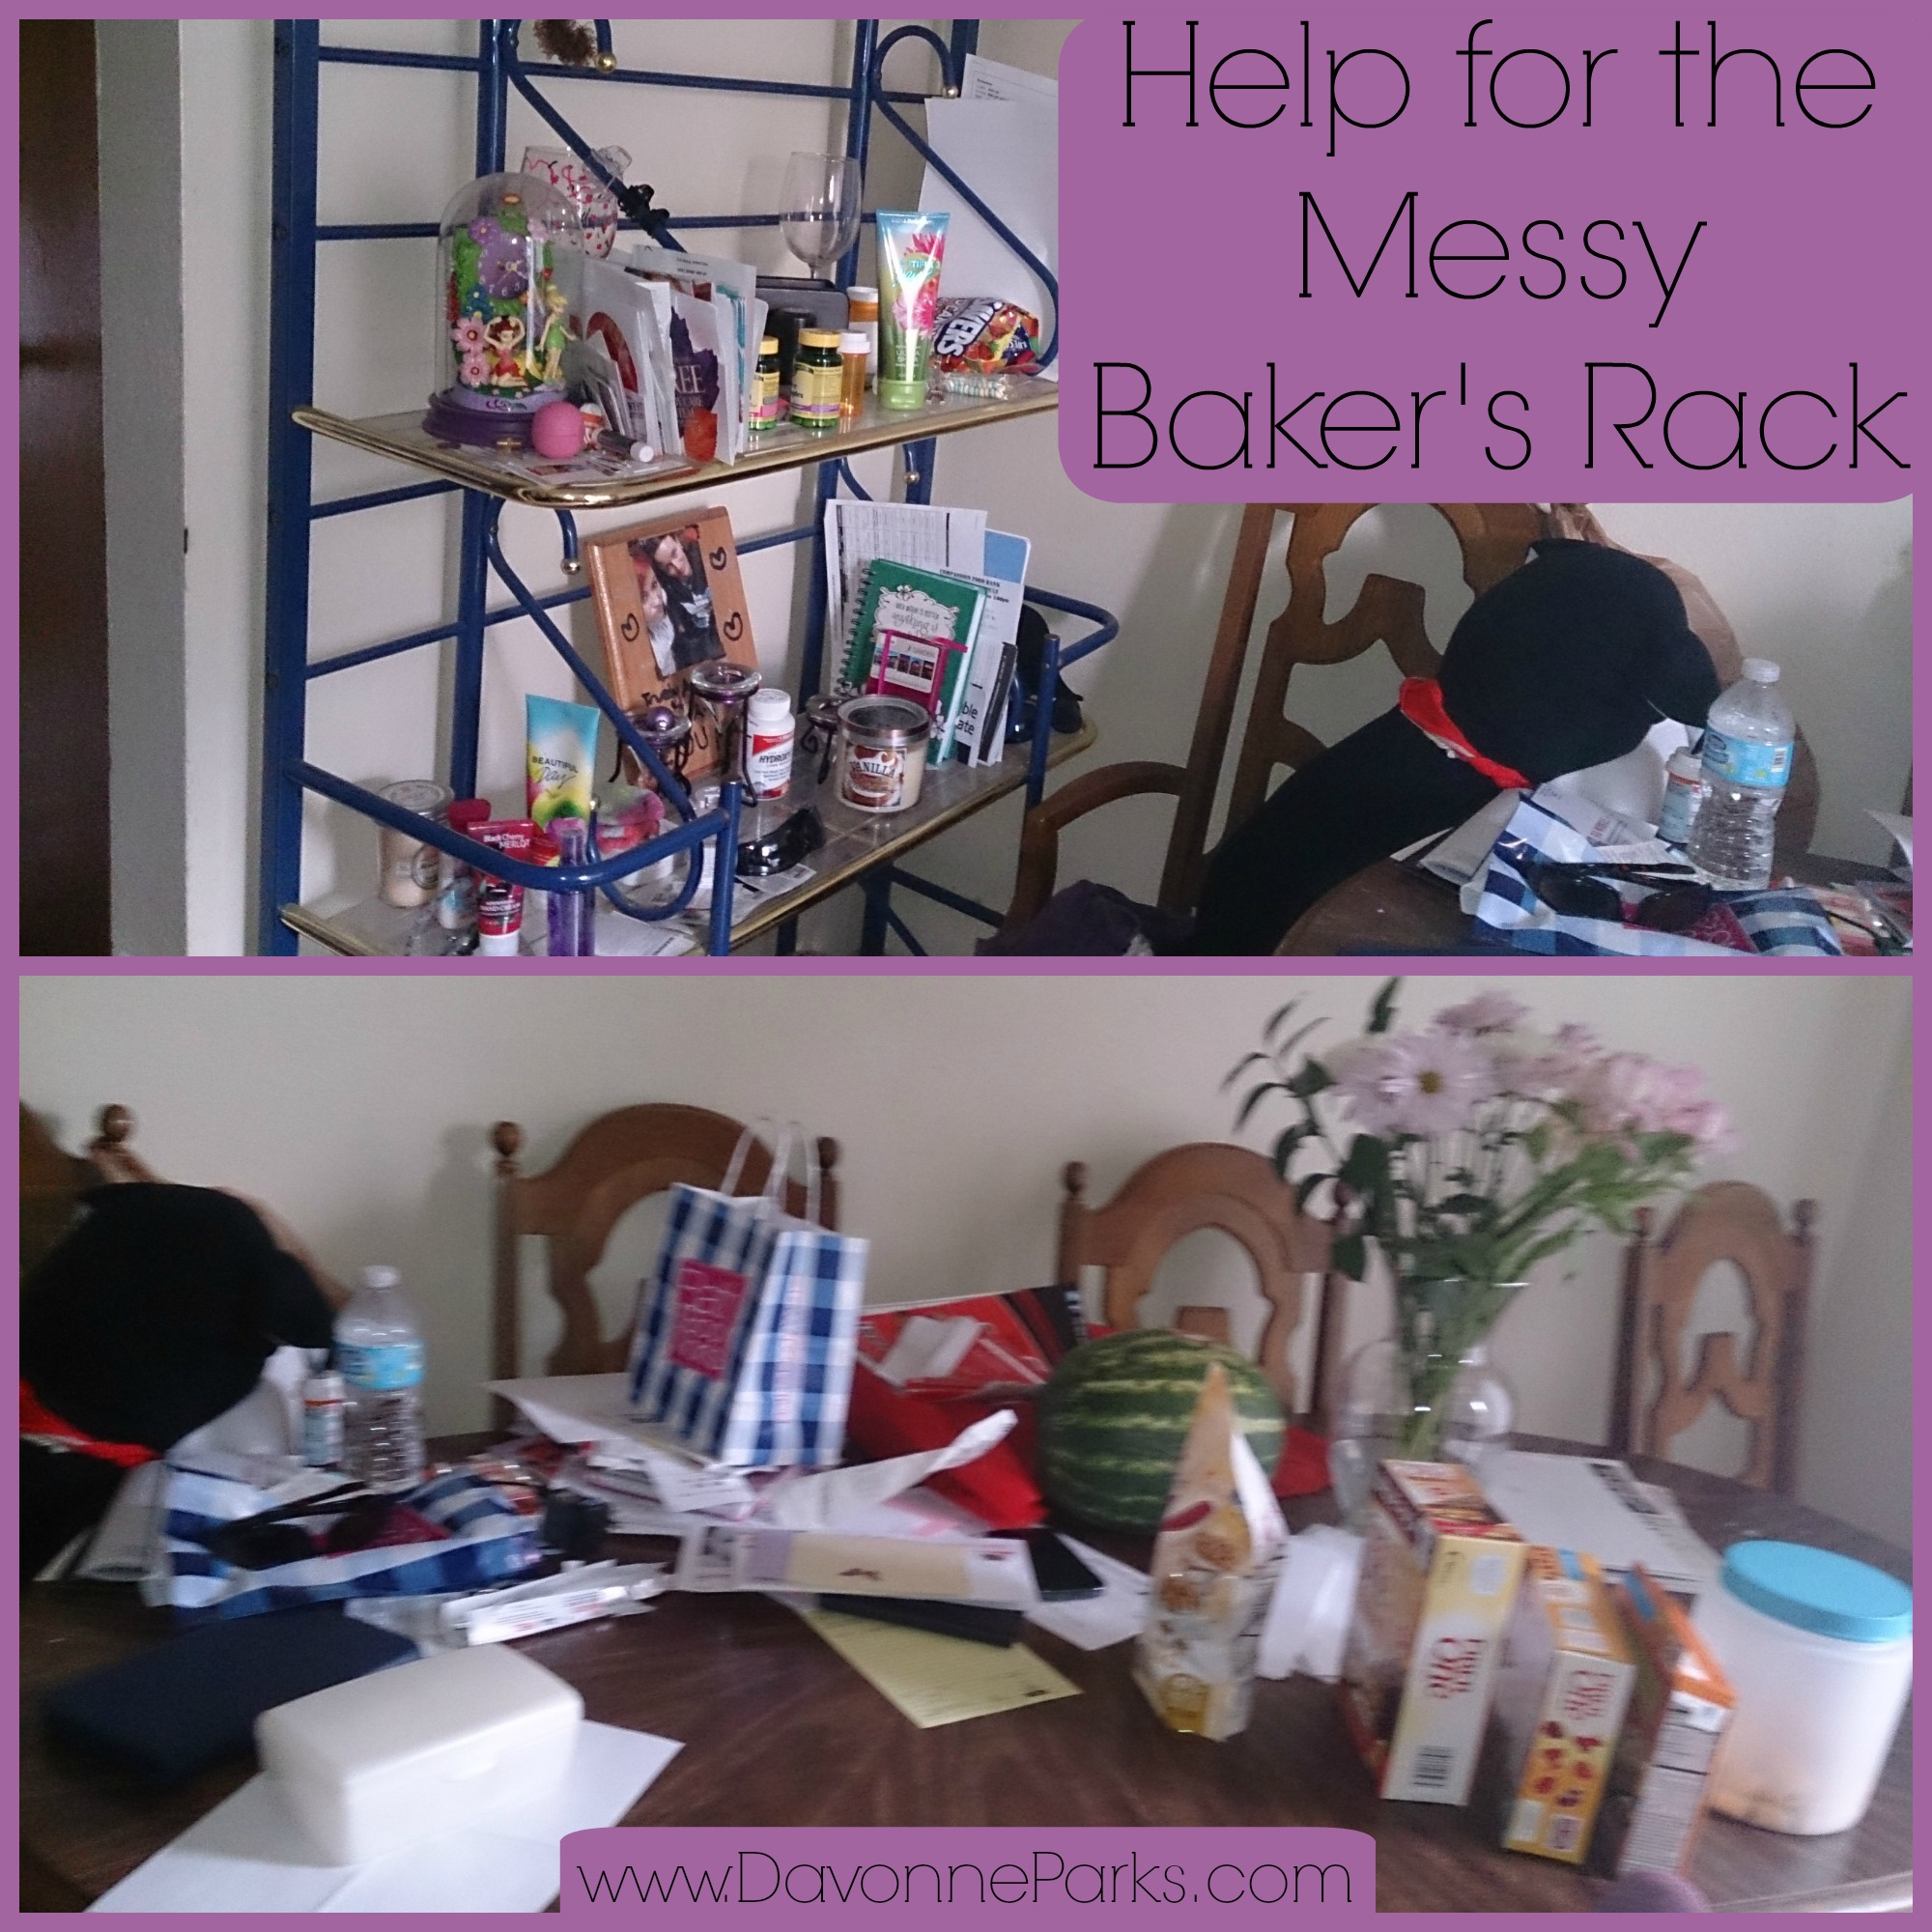 Help for the Messy Baker's Rack